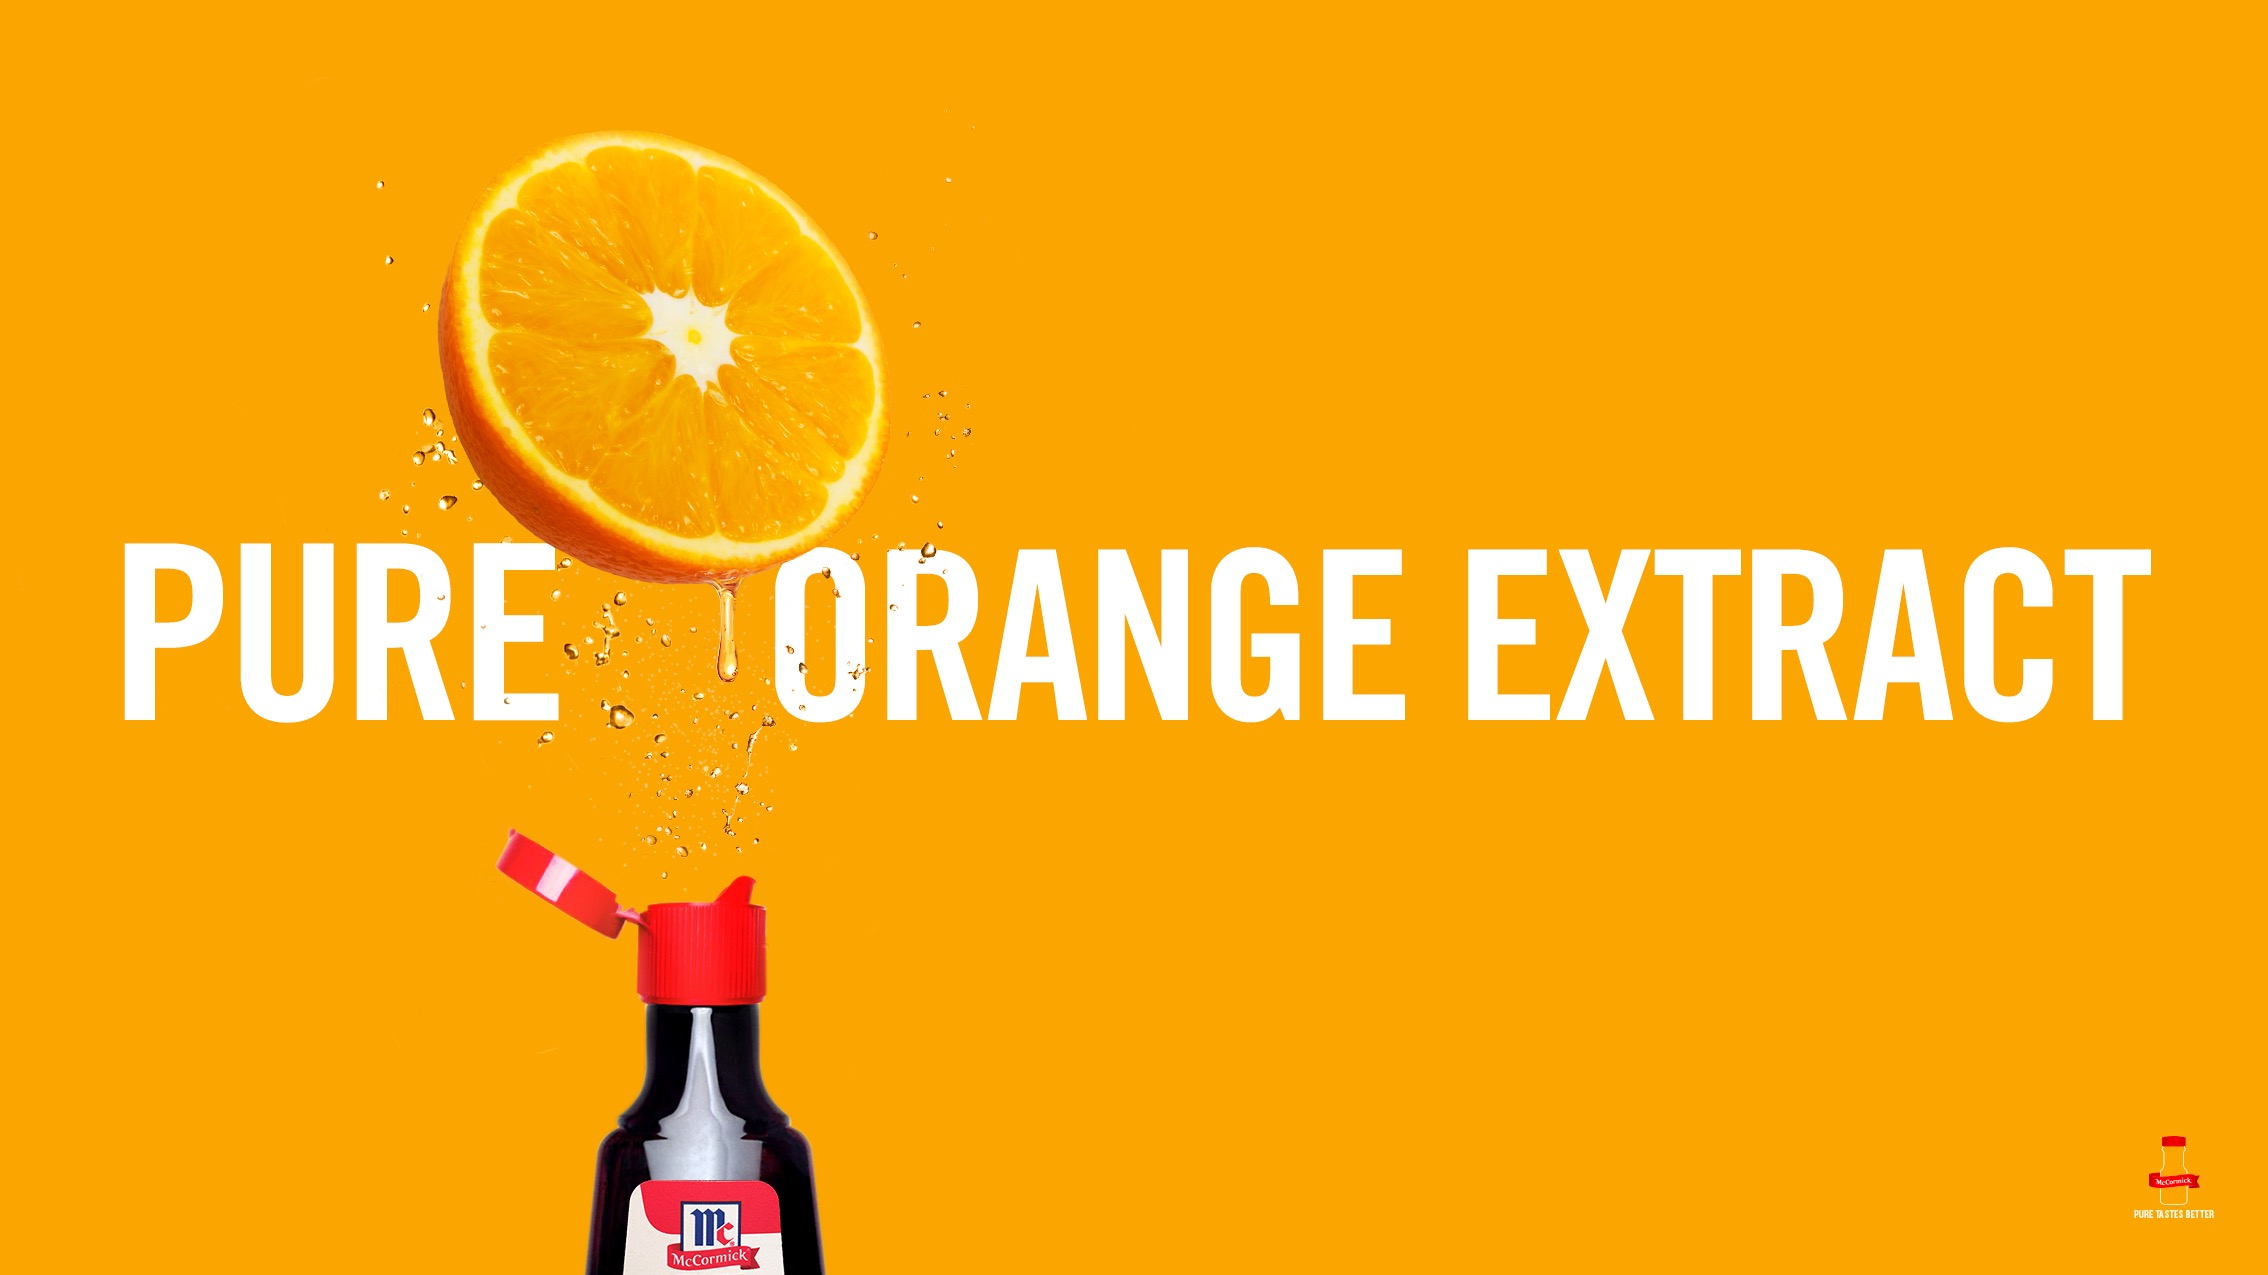 PureIngredients_0211_OrangeExtract.jpeg